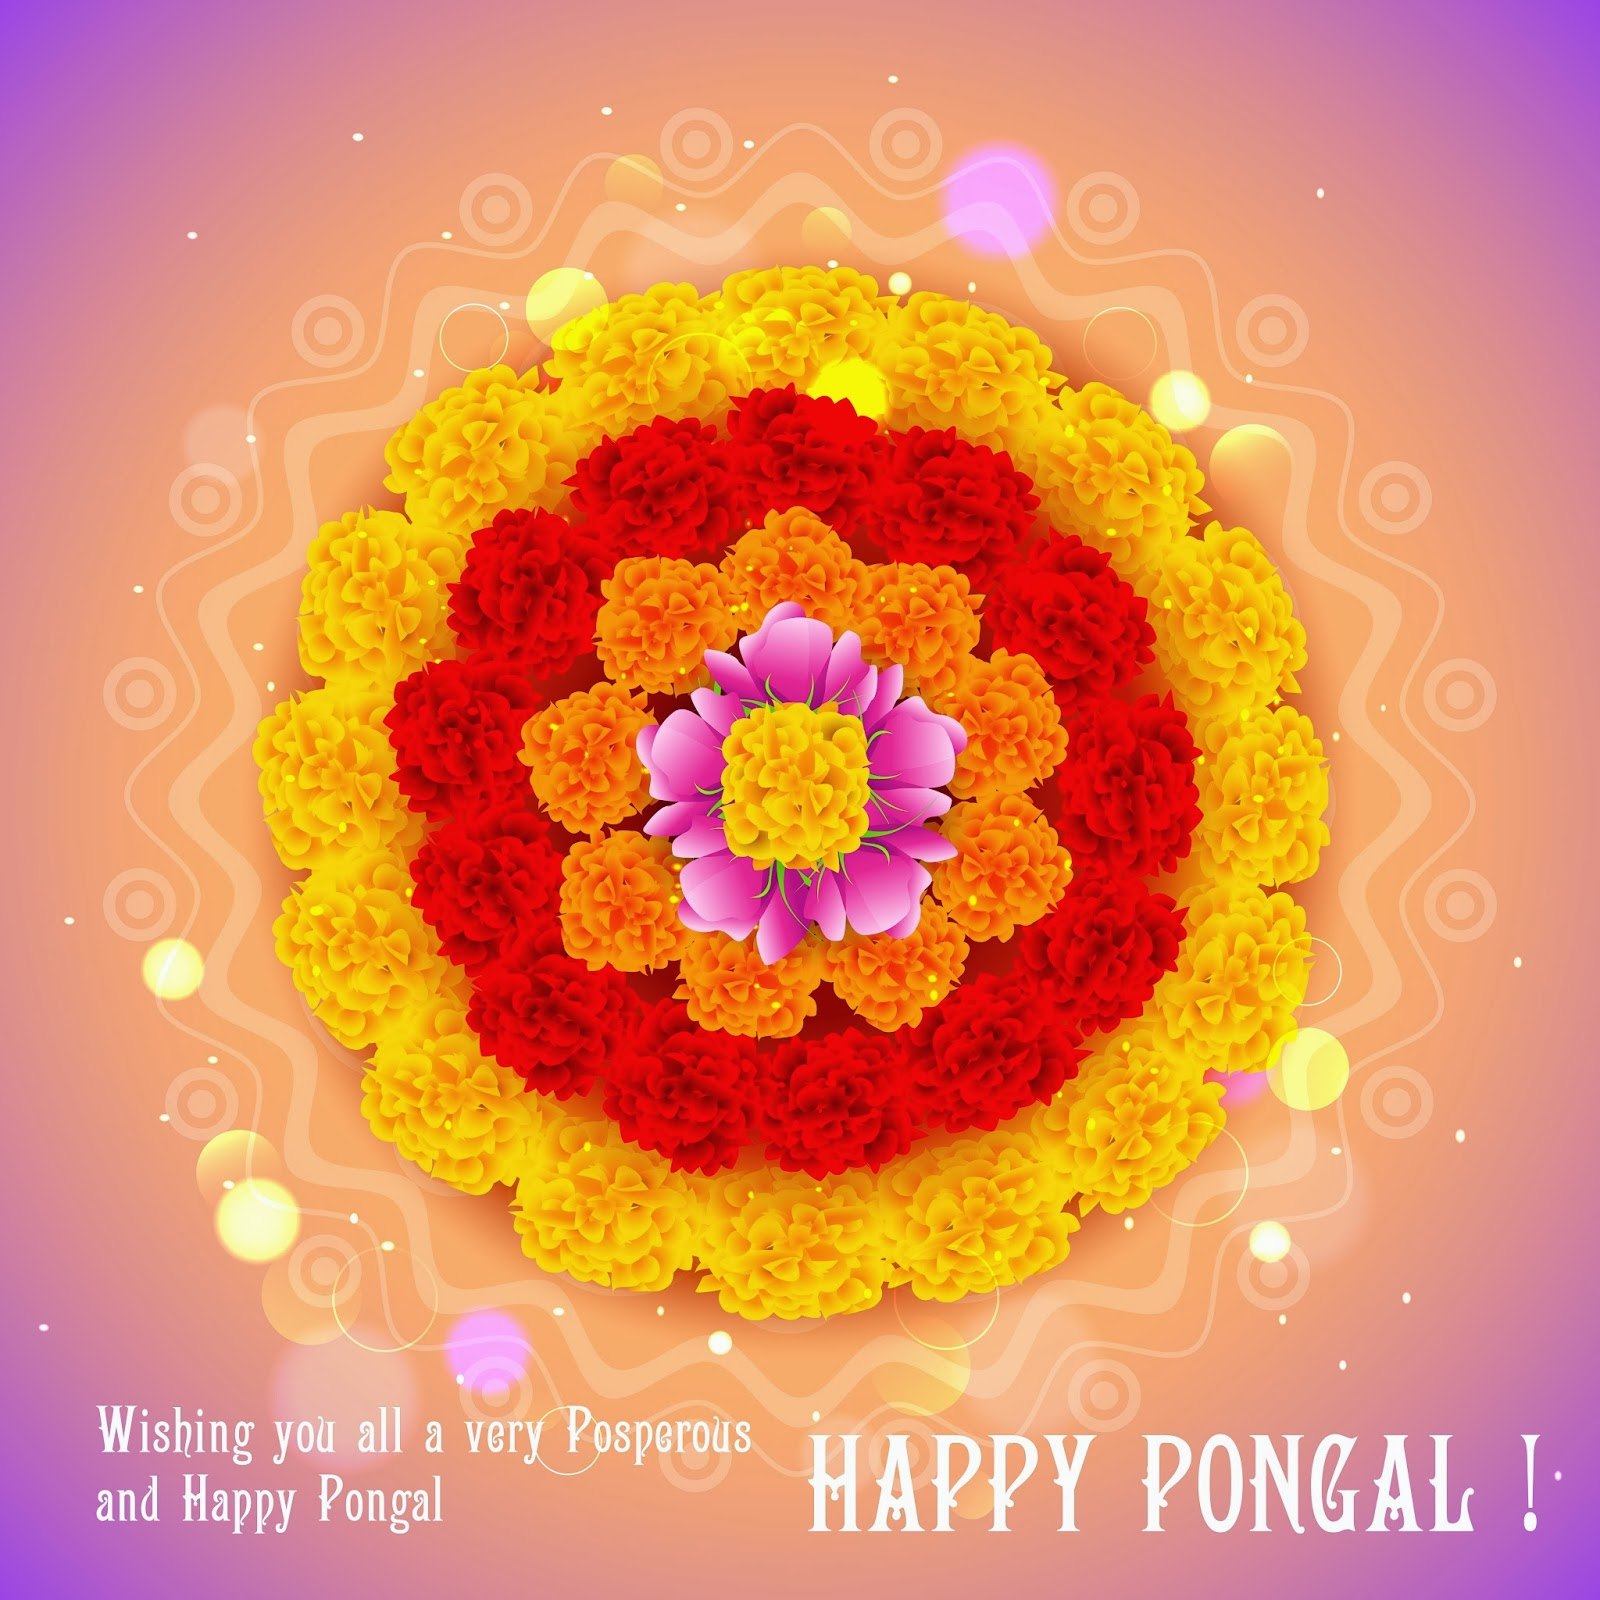 happy-sankranti-images-with-hd-flowers-naveengfx.com